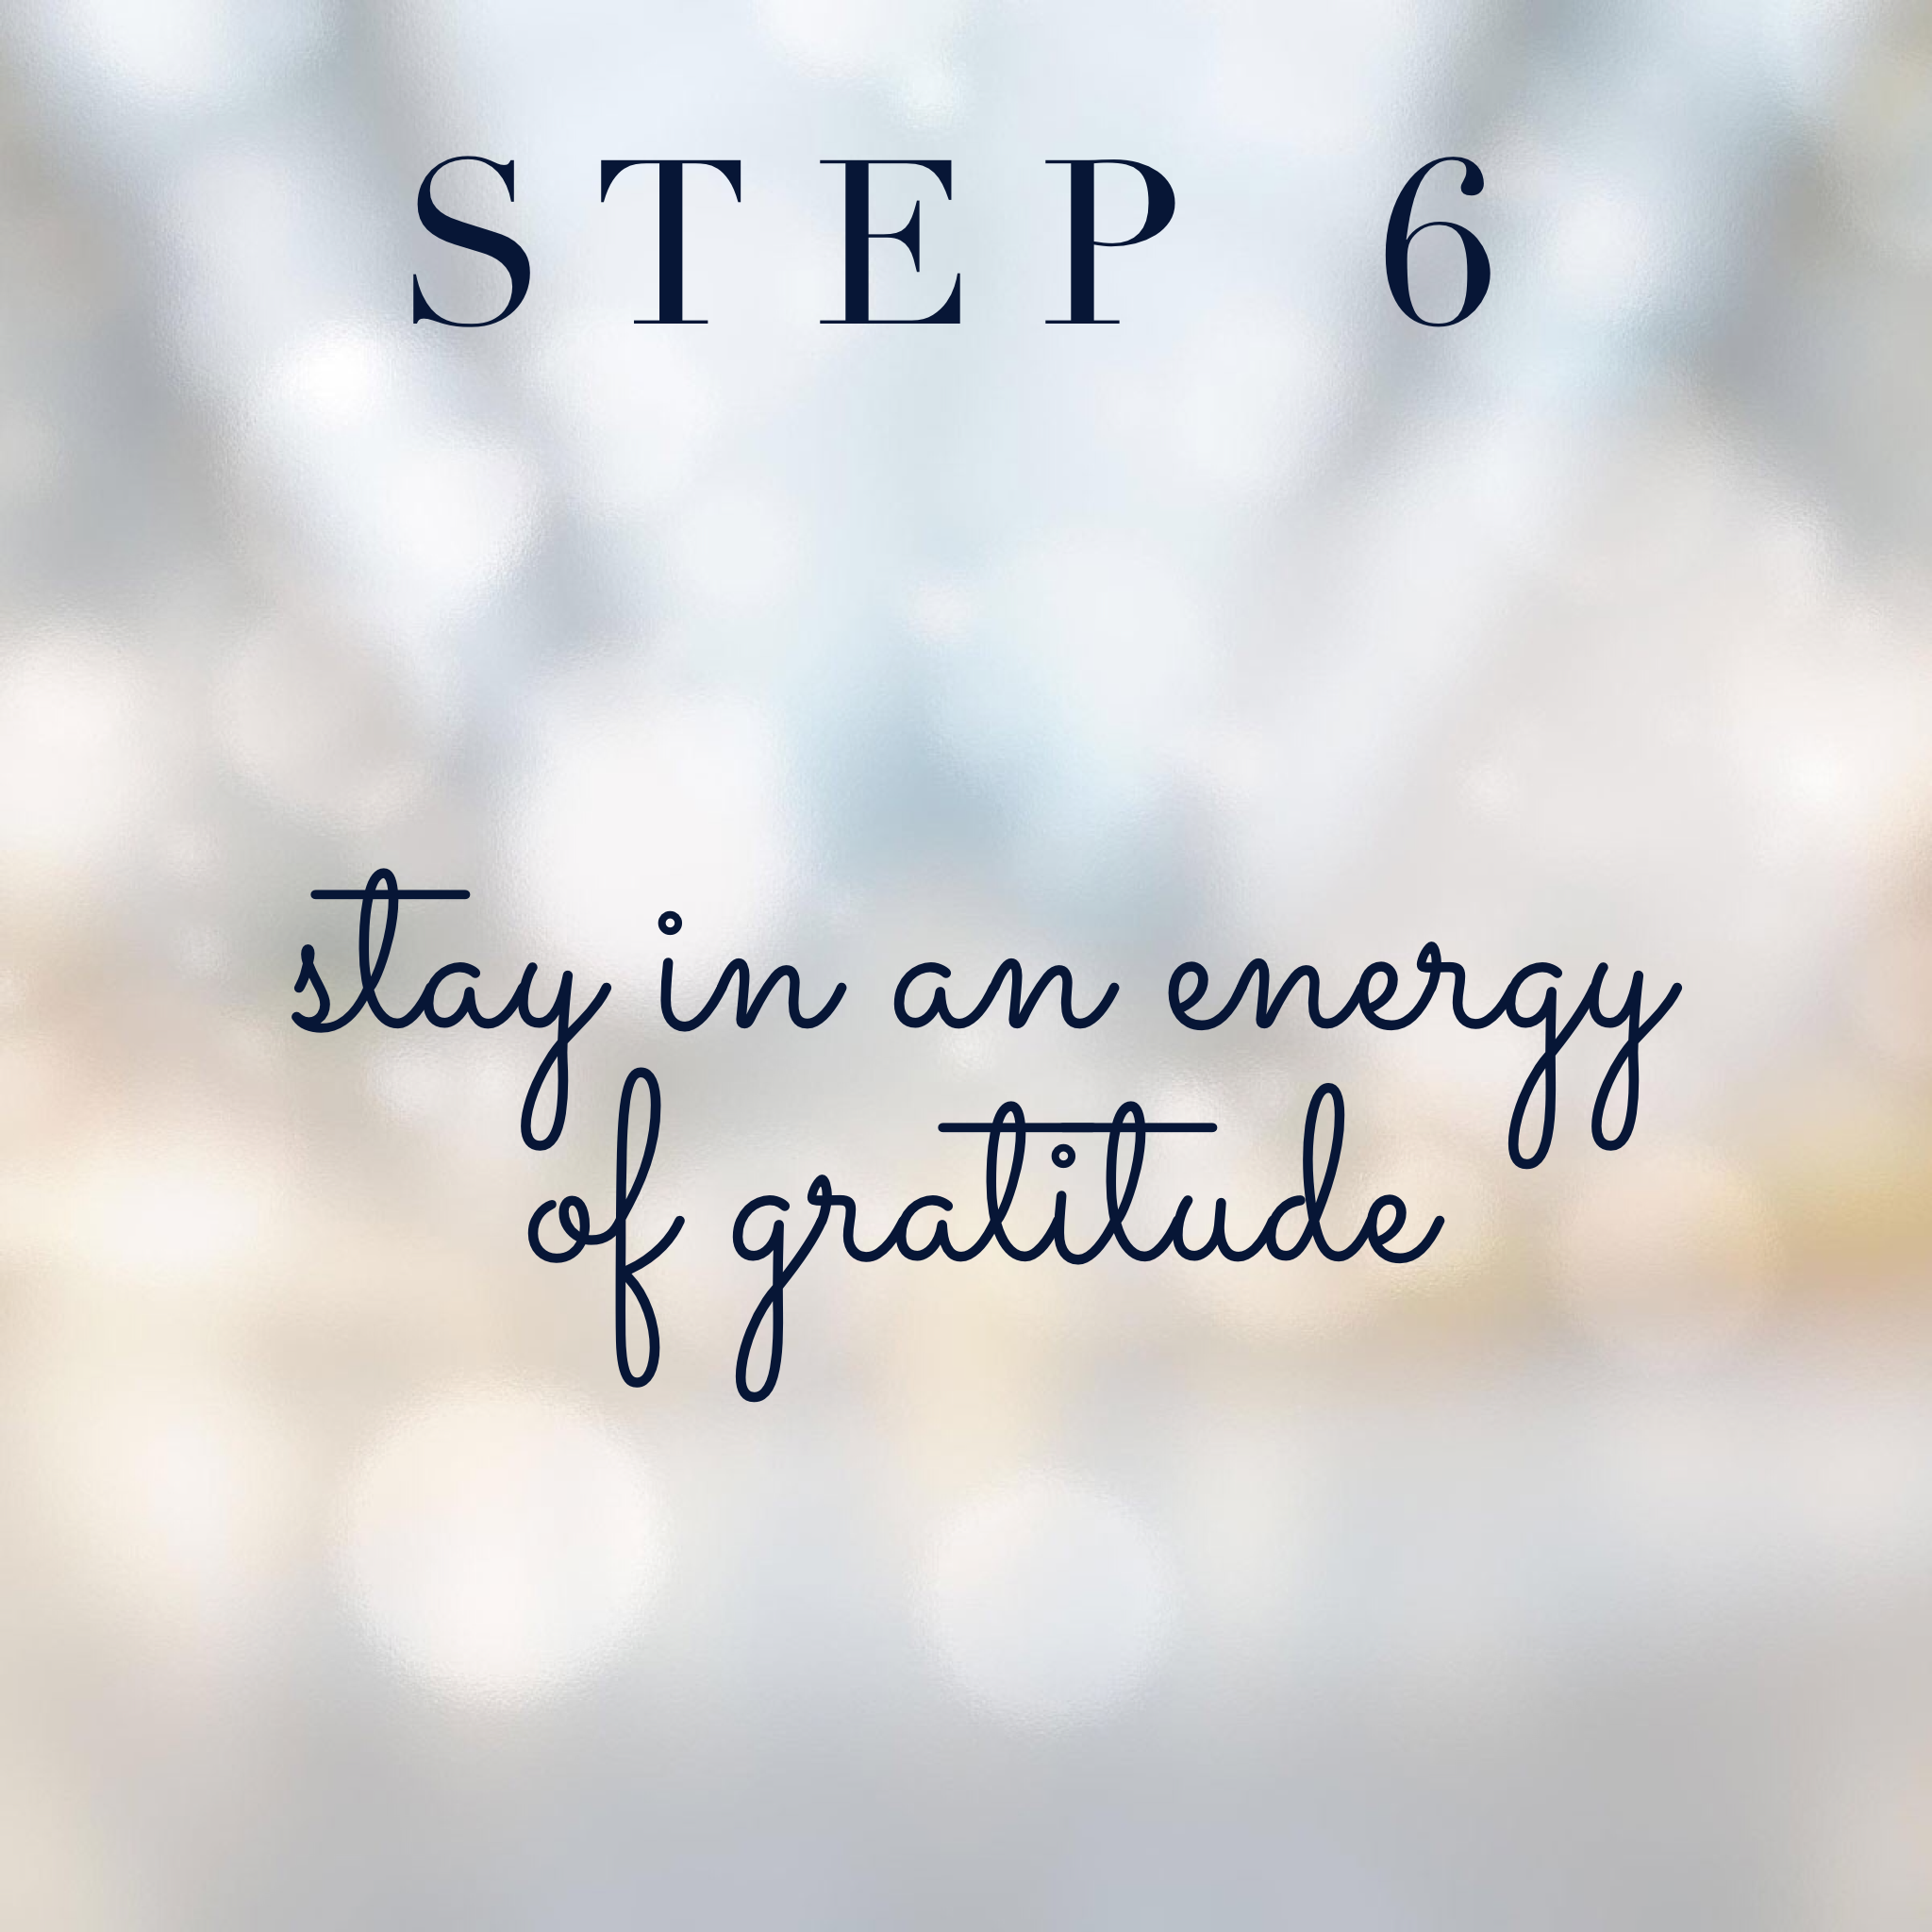 Connect with your spirit guides step 6: Stay in an energy of gratitude